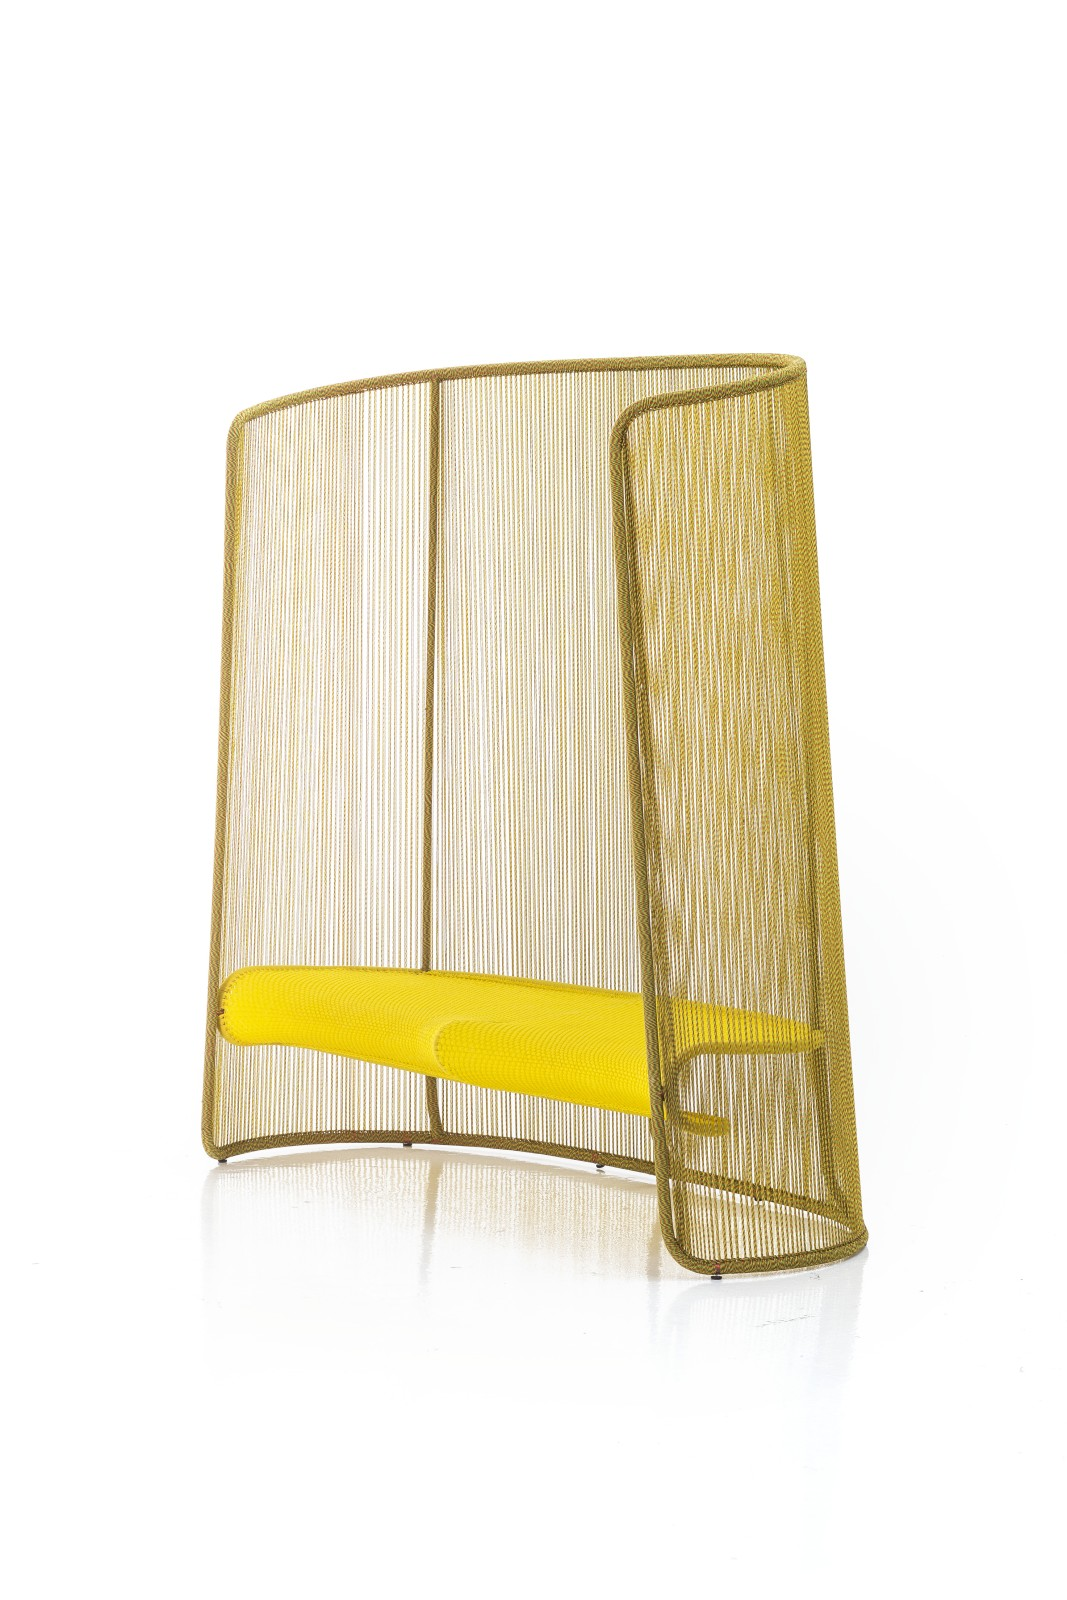 Husk M Armchair Yellow